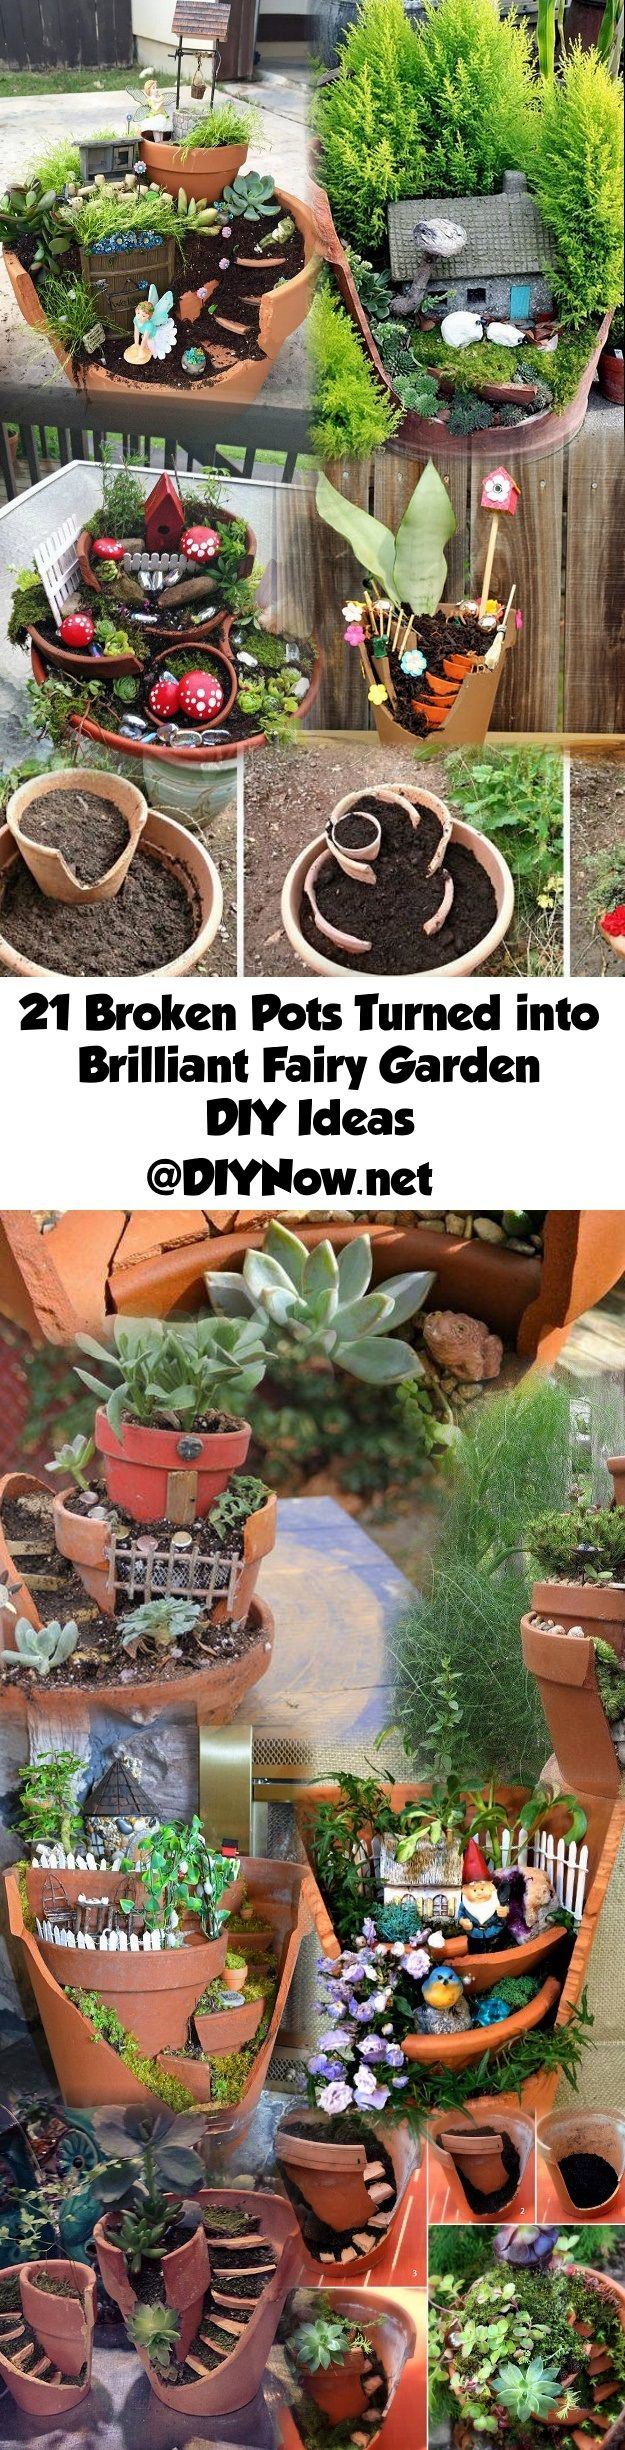 21 Broken Pots Turned Into Brilliant Fairy Garden Diy